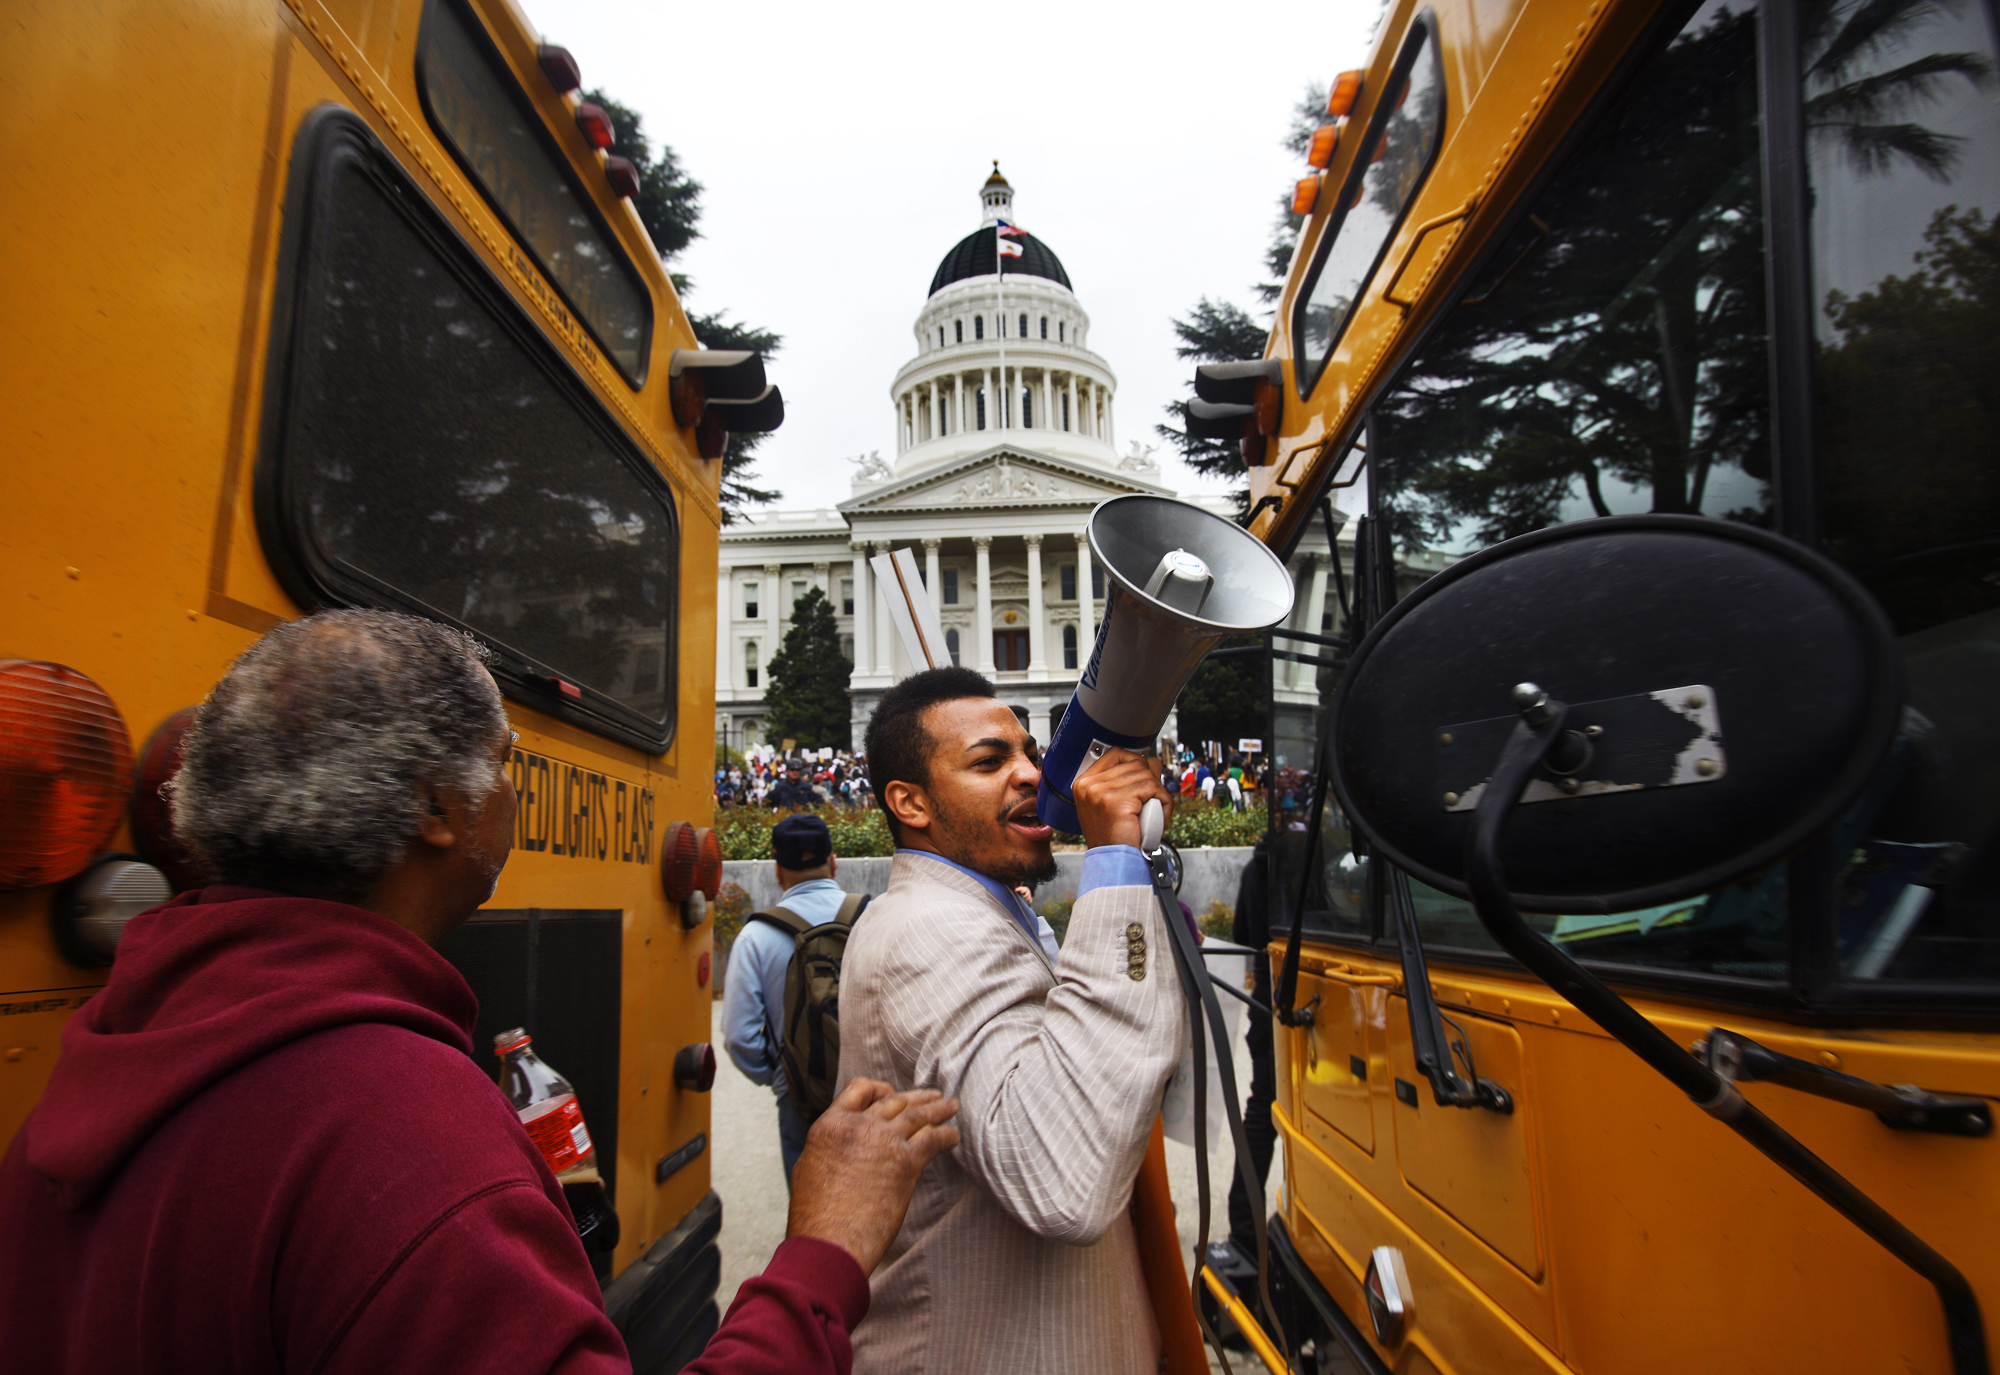 """Foothill College Student Rights Officer Etienne R. Bowic leads students towards California's Capitol building in Sacramento, cheering """"SOS, save our schools"""" and """"Our people, our nation, we need an education."""" Thousands bused statewide to protest cuts to state's cash-strapped community colleges on March 22, 2010."""